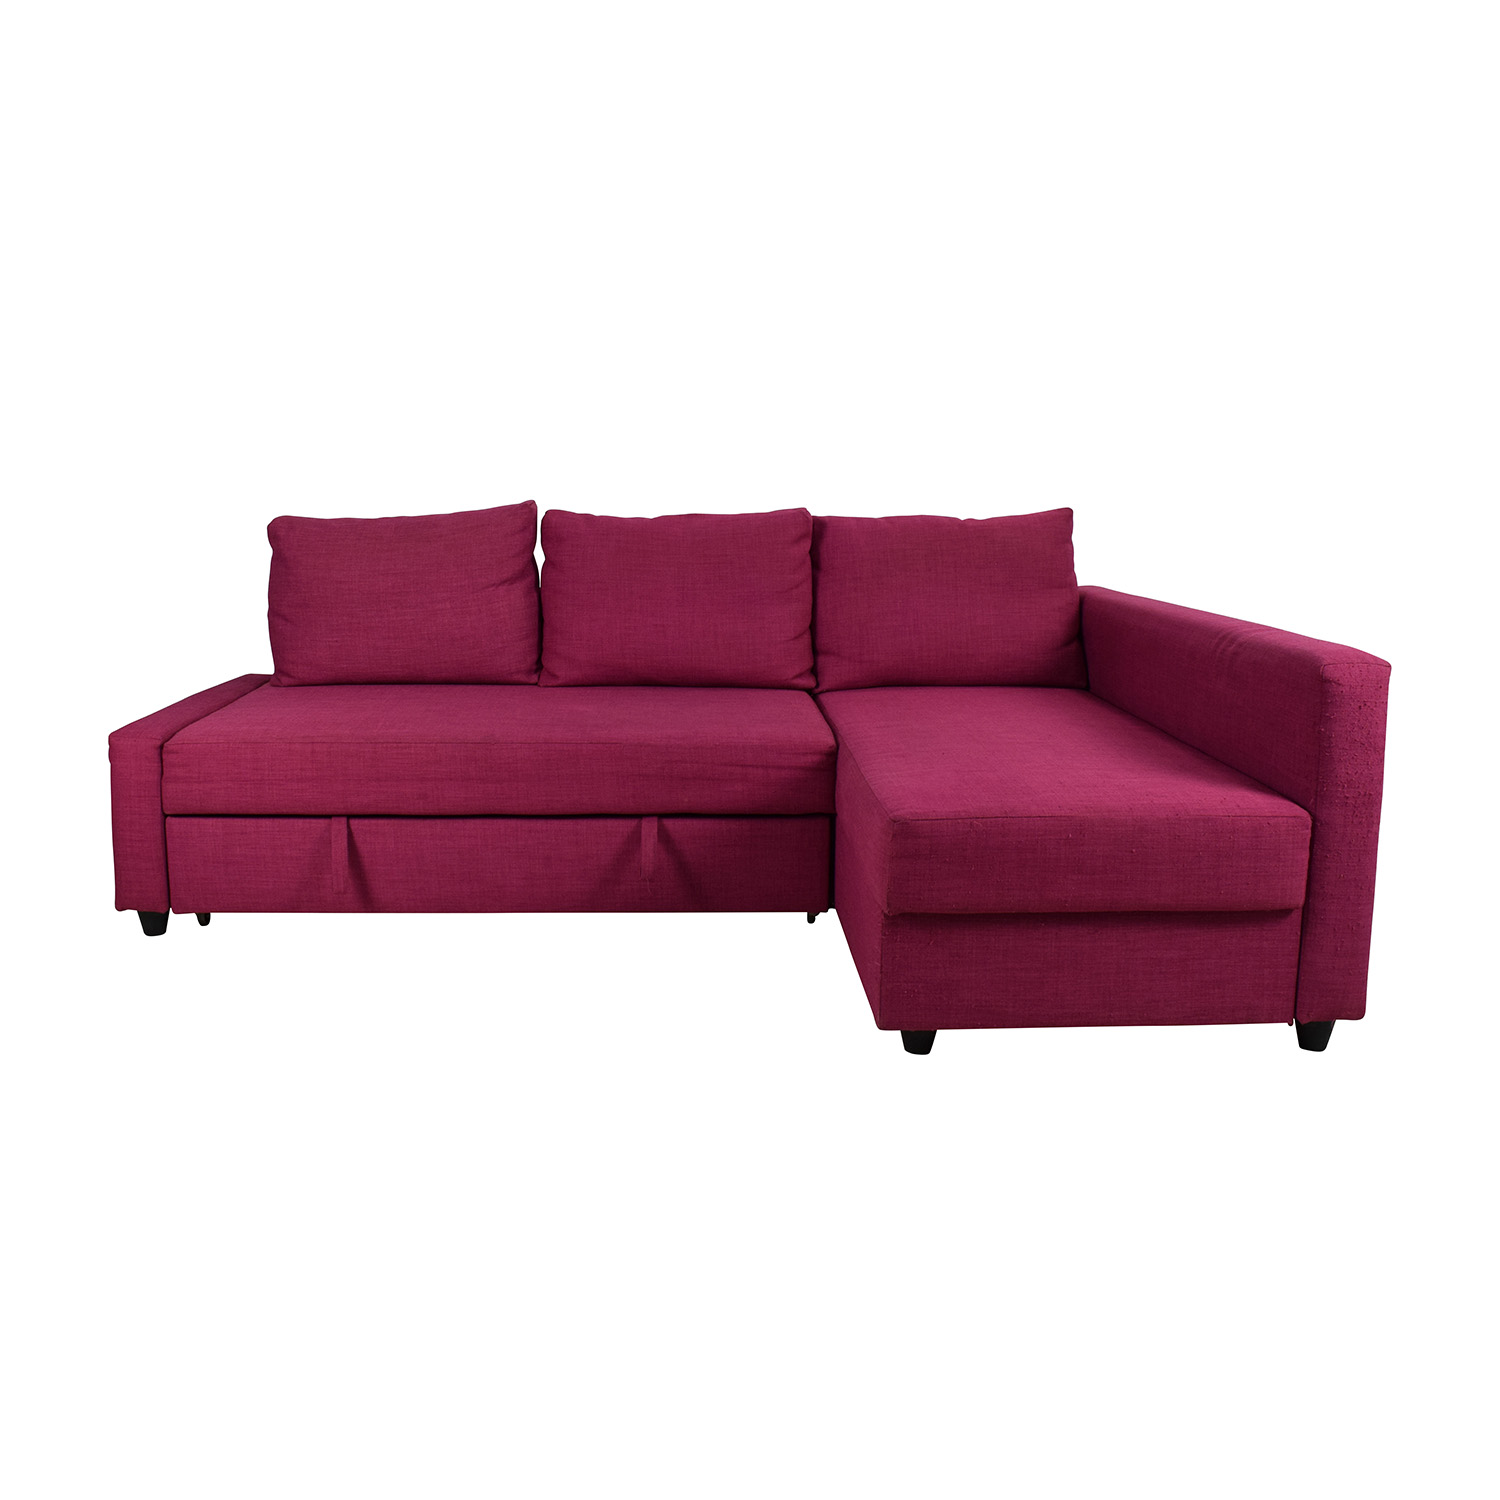 pink sofa furniture kmart futon bed ikea leather sleeper faux couches chairs